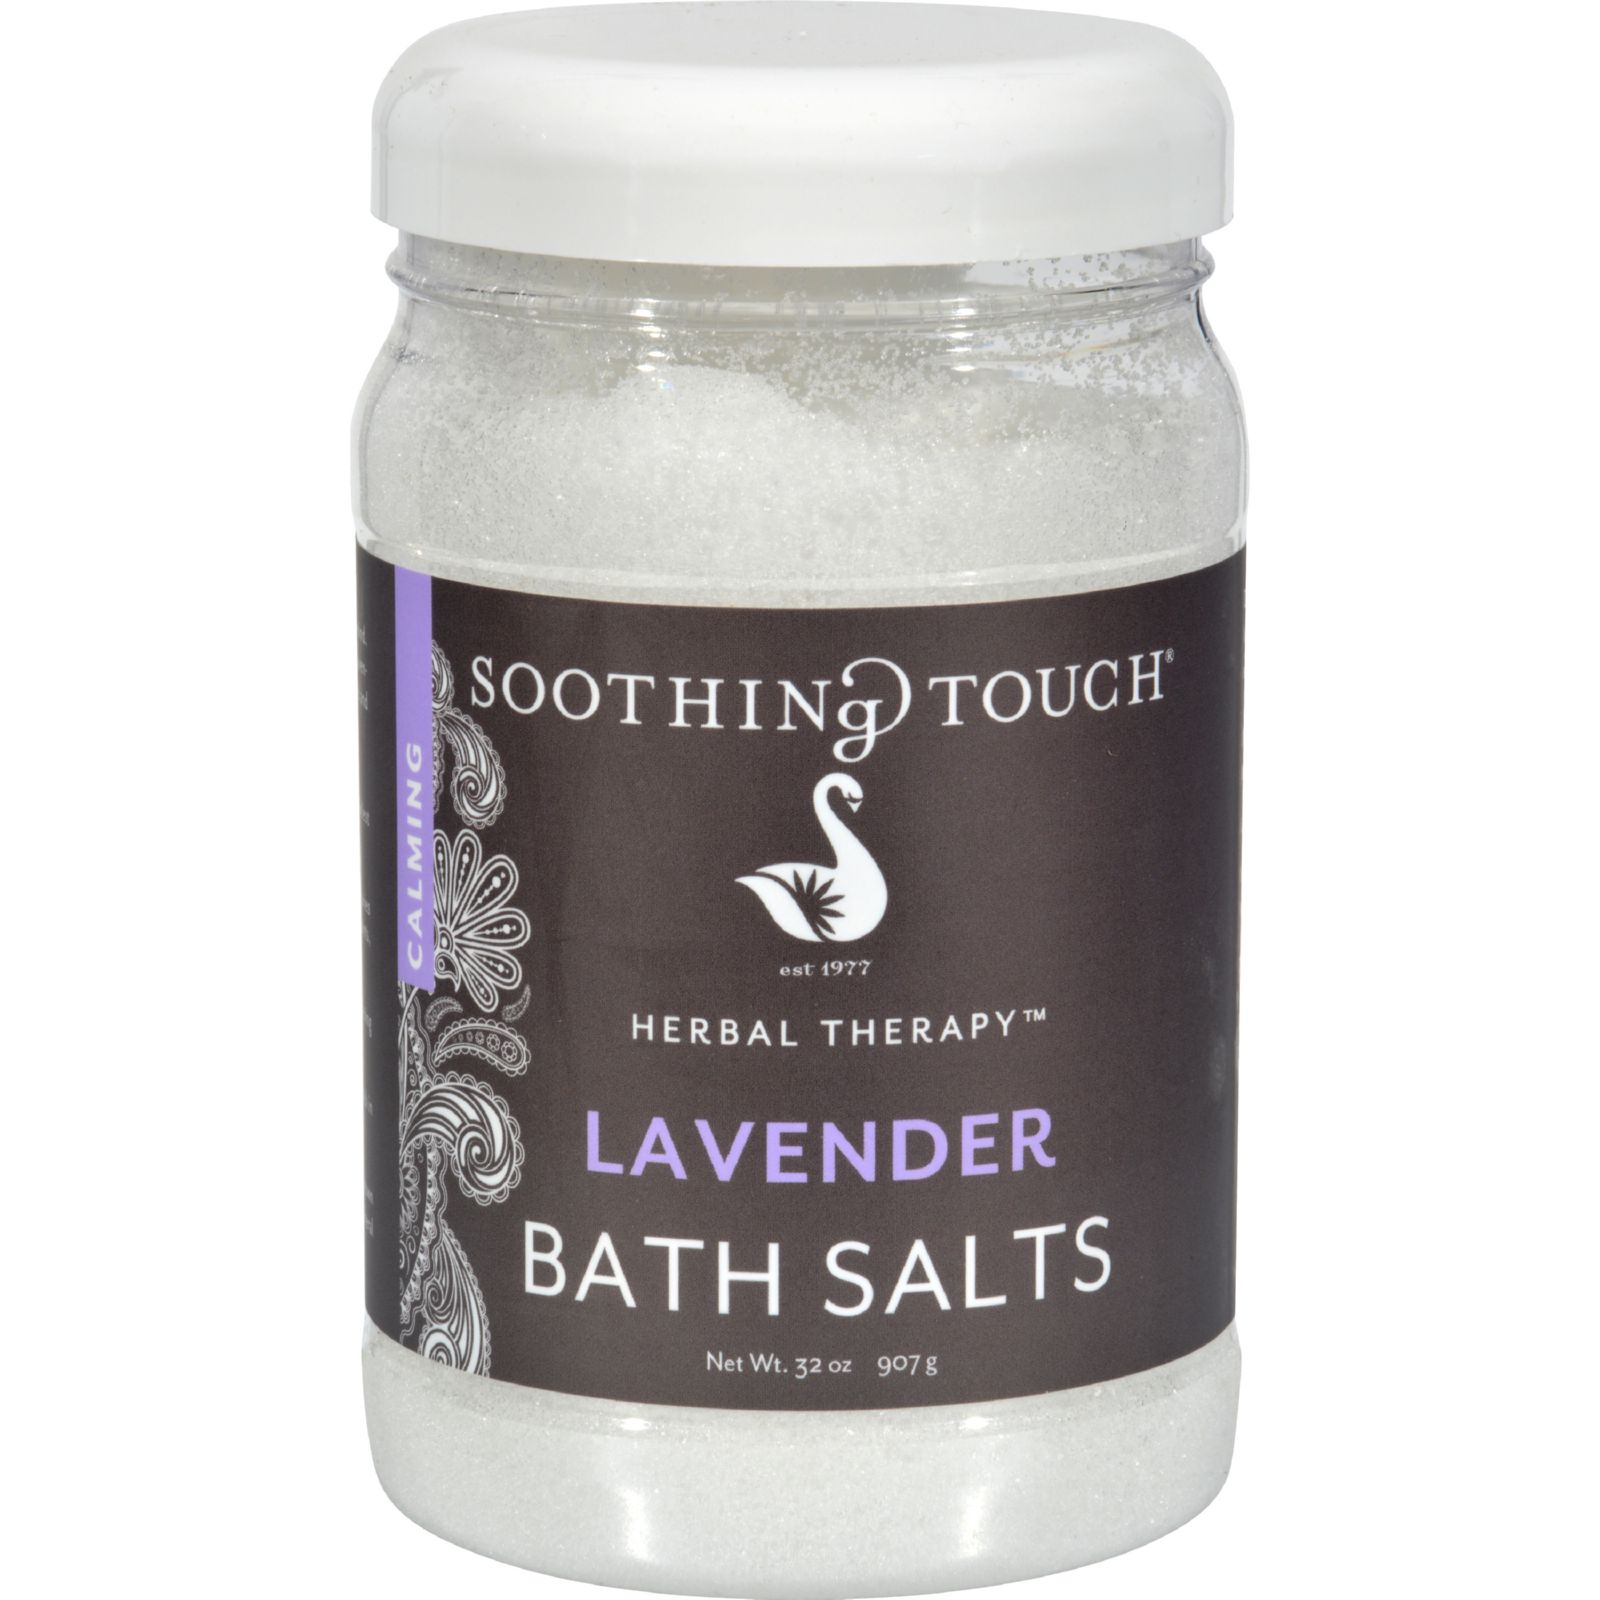 Soothing Touch Bath Salts - Lavender - 32 Oz